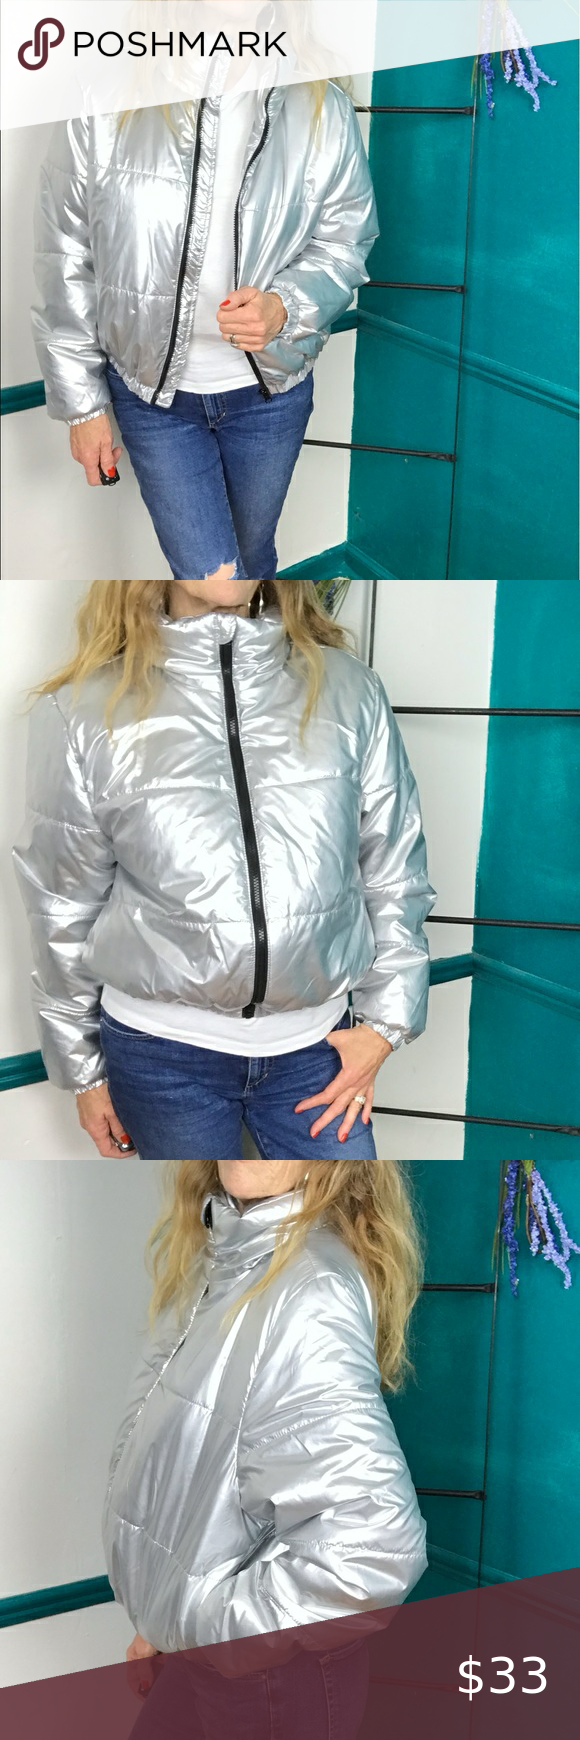 Wild Fable Silver Puffer Jacket With High Zip Neck Silver Puffer Jacket Jackets Puffer Jackets [ 1740 x 580 Pixel ]